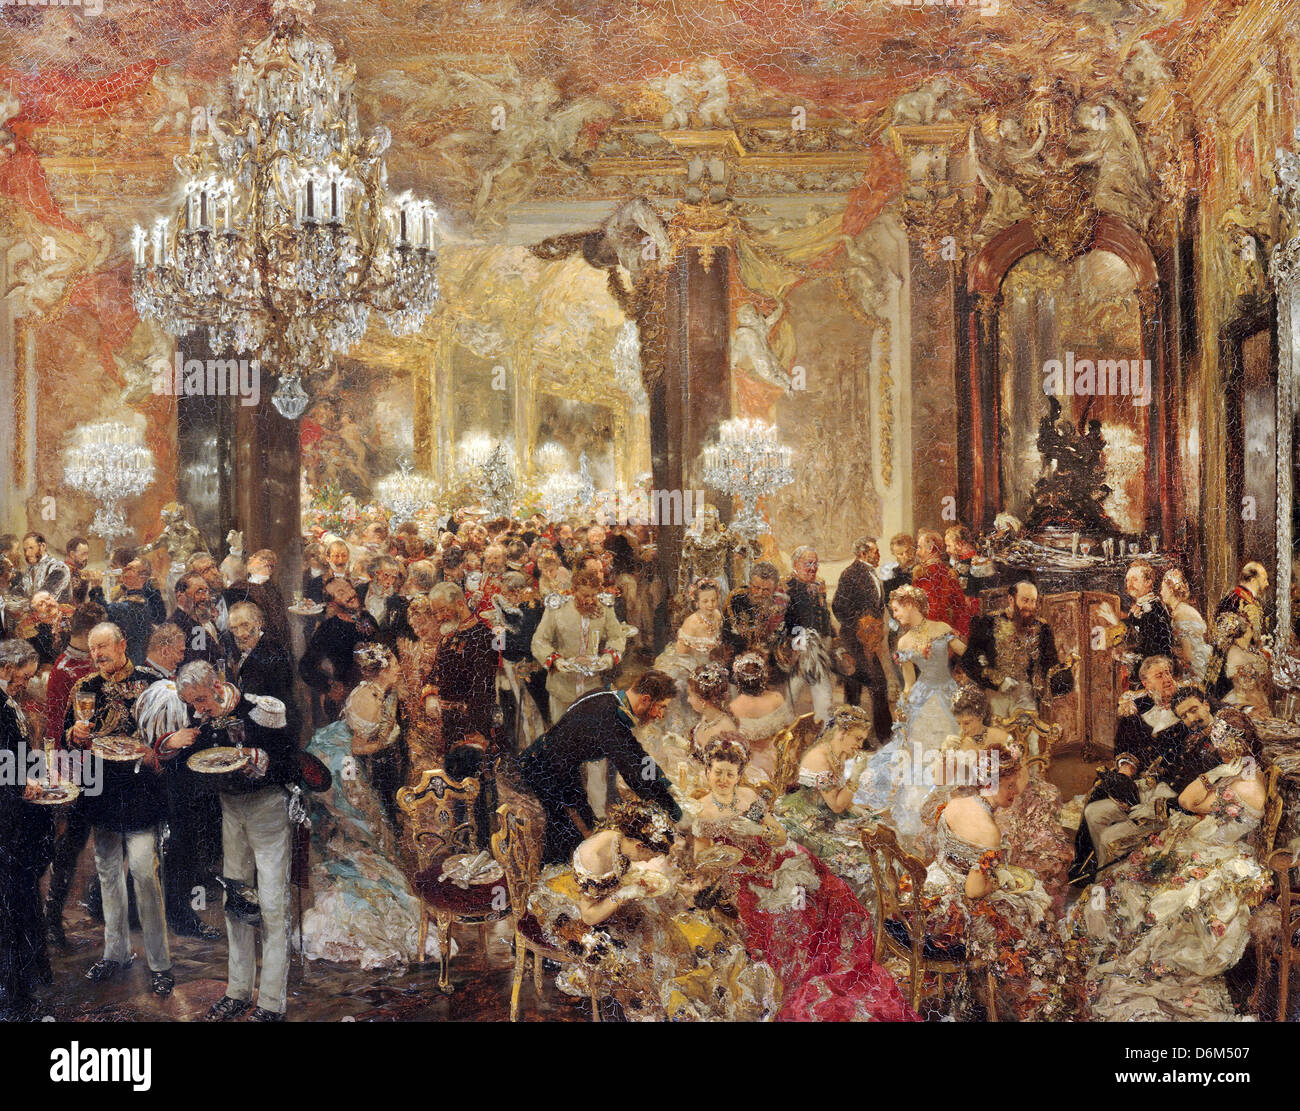 Adolf Menzel, The Dinner at the Ball 1878 Oil on canvas. Alte Nationalgalerie, Berlin - Stock Image